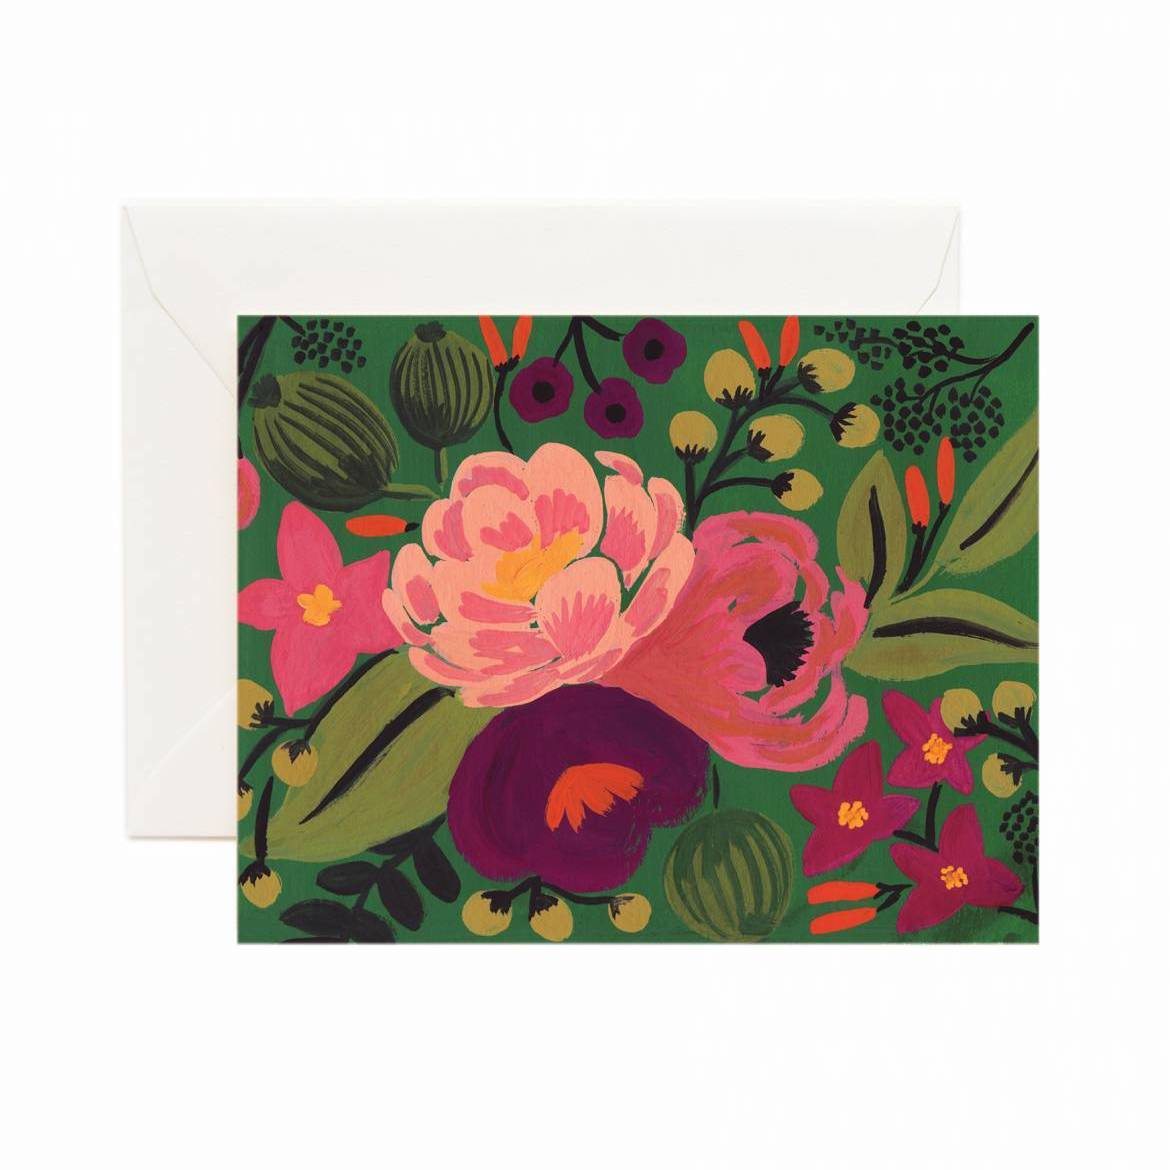 Vintage Blossom Card Set - Emerald - Rifle Paper Co.